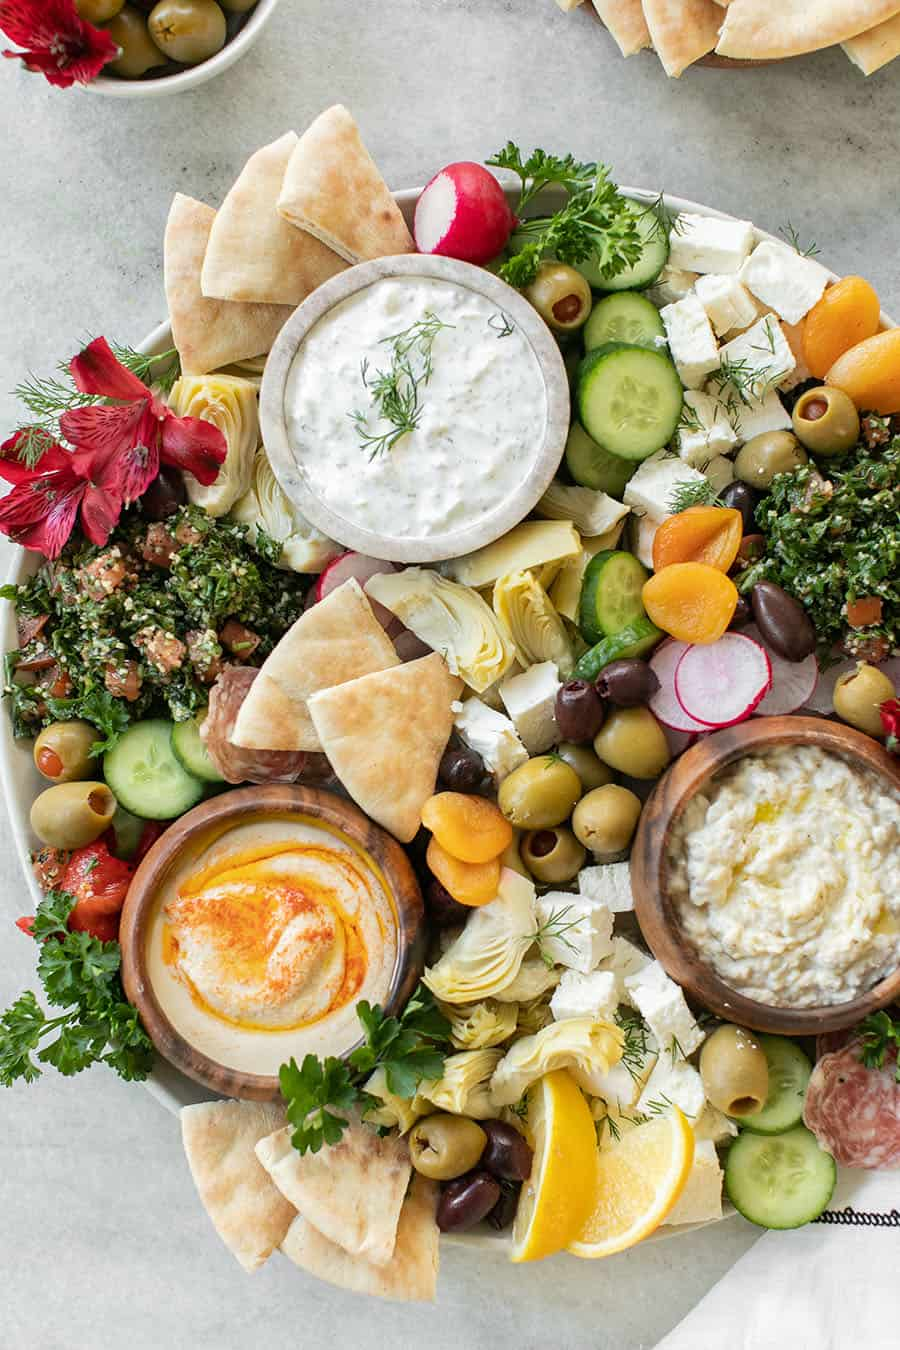 Easy Greek Mezze Platter with yogurt and pretty toppings like olives, radish, bread.